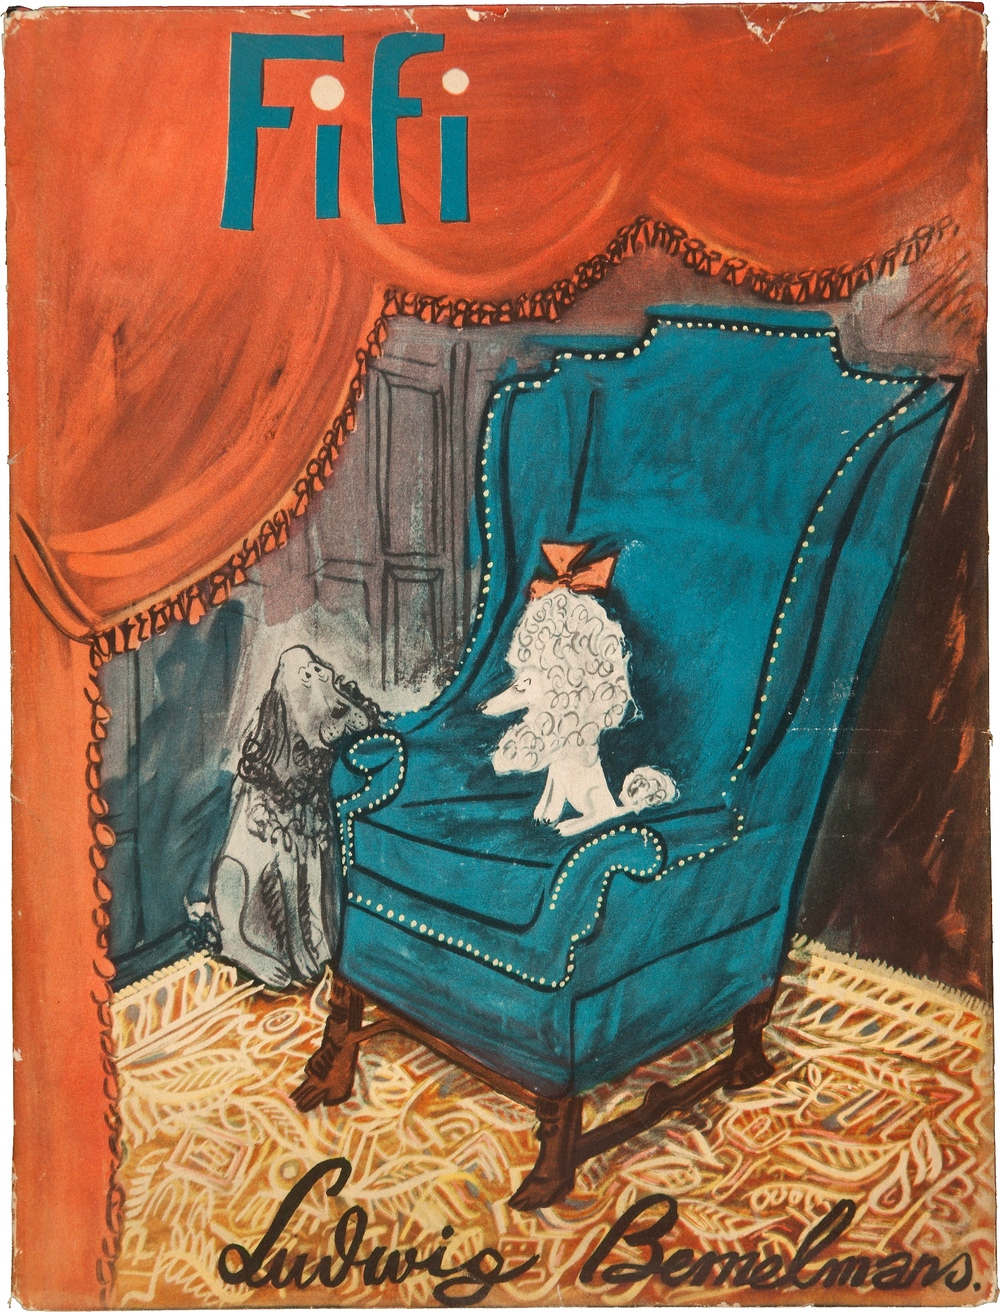 Ludwig Bemelmans. Fifi. New York: Simon and Schuster, [1940].